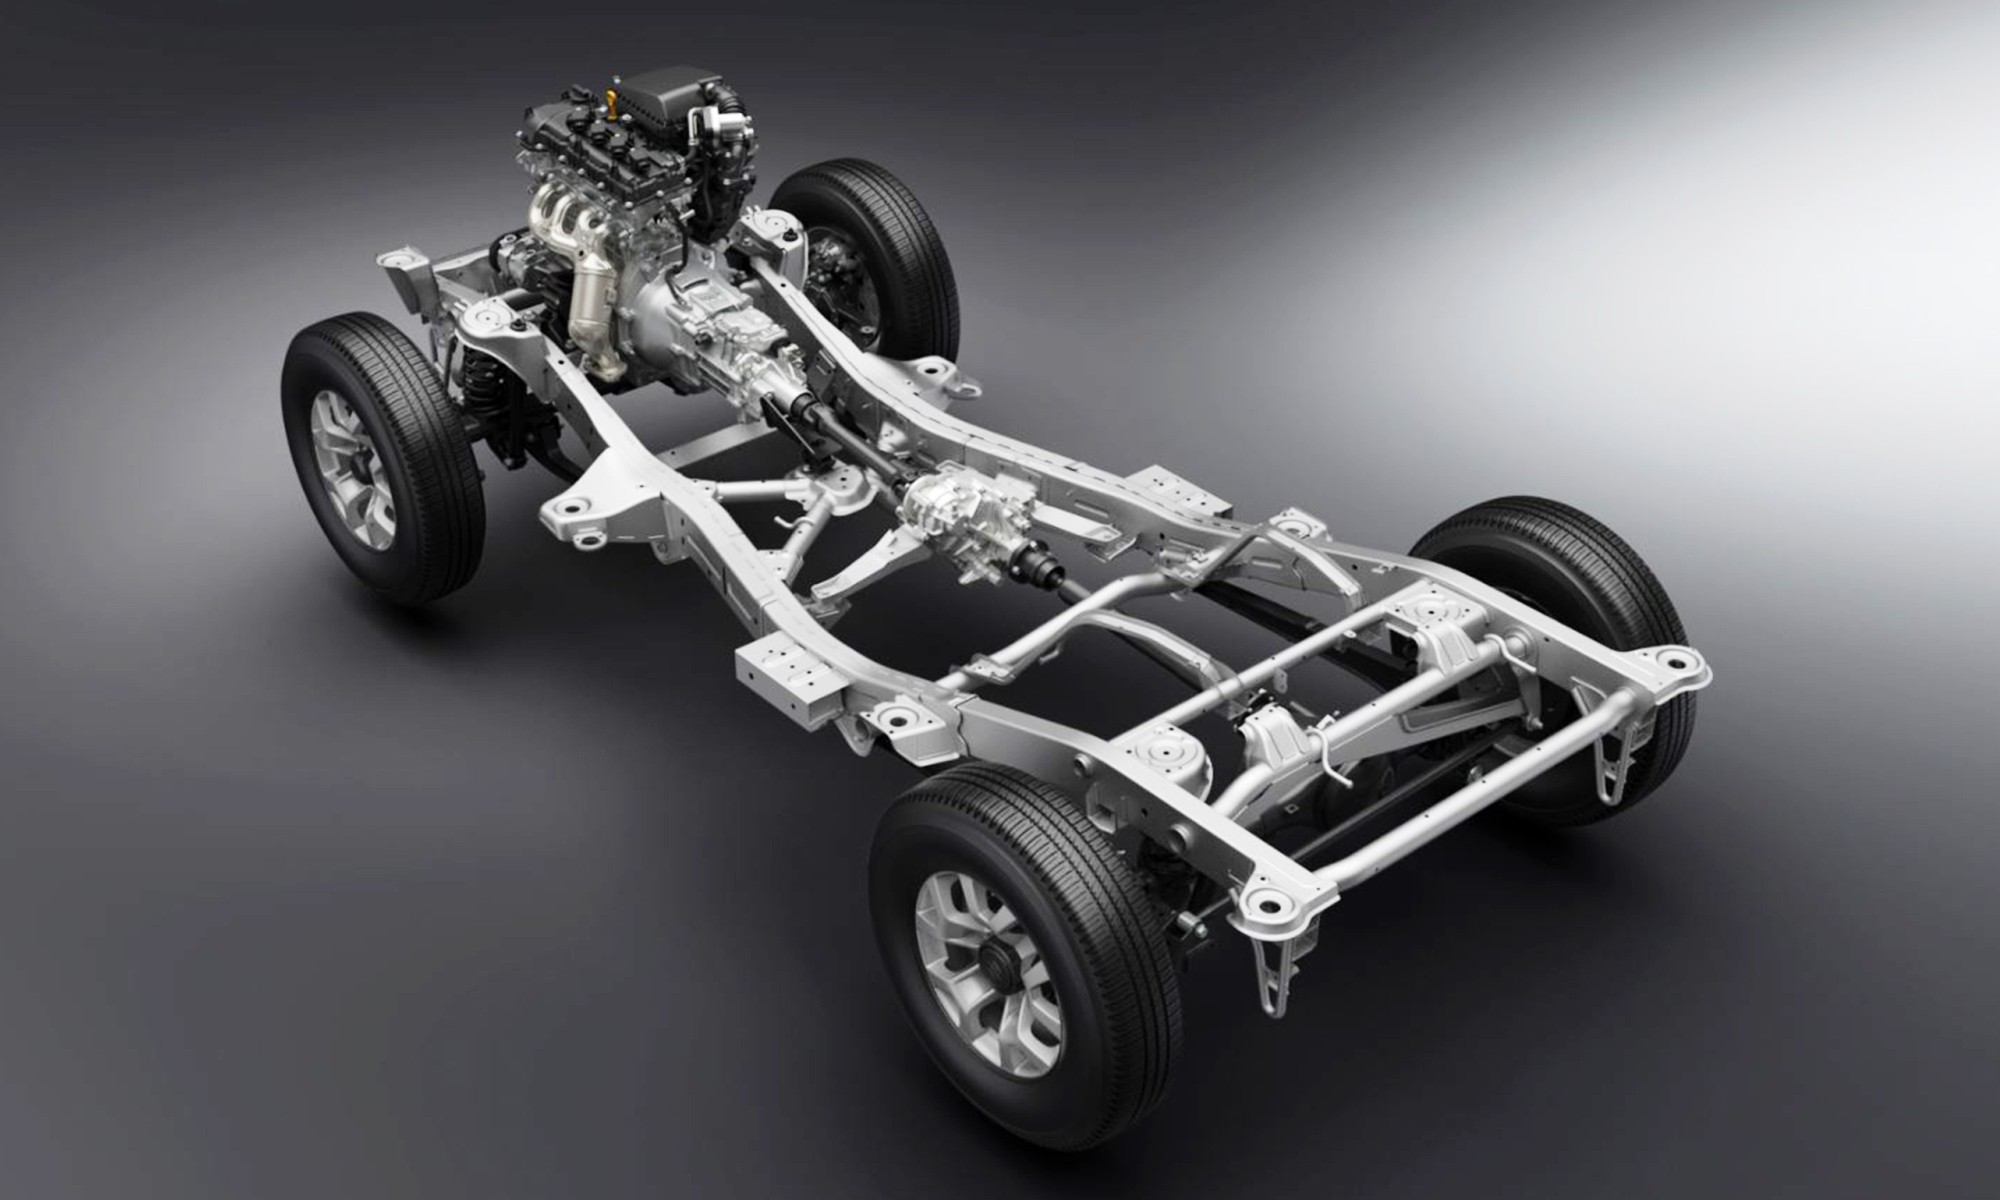 The new Jimny retains its ladder frame base